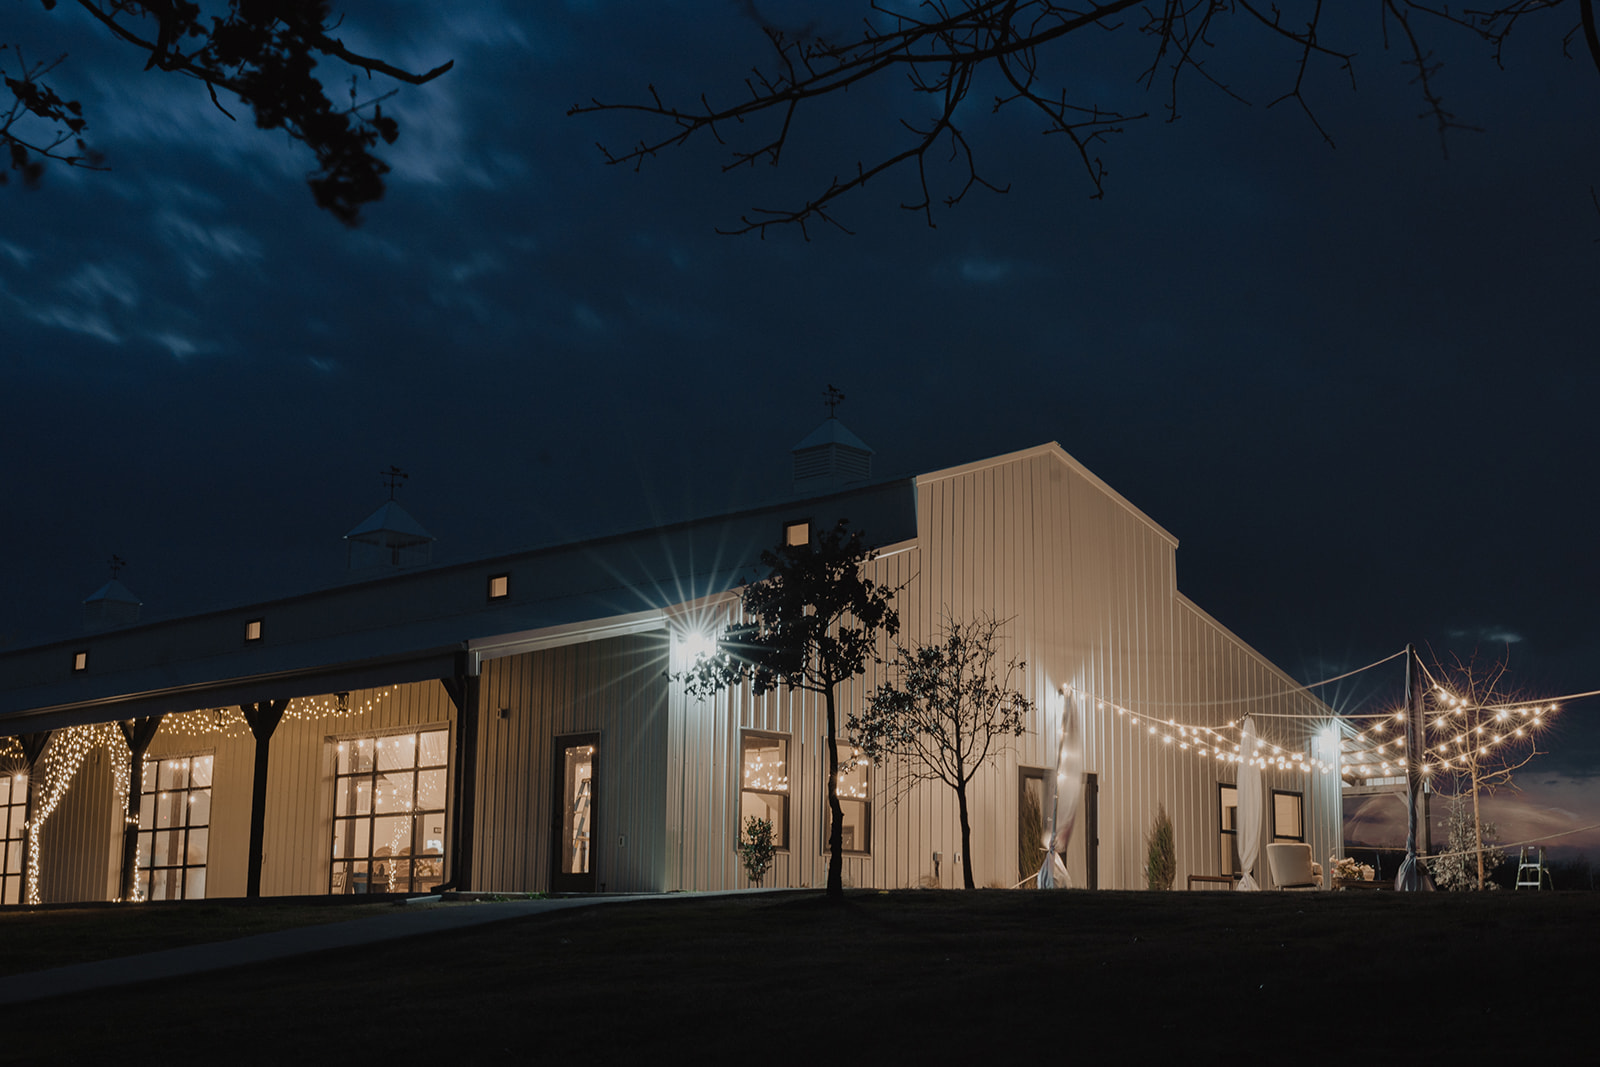 Indoor Ceremony Tulsa Wedding Venue Dream Point Ranch 77.jpg